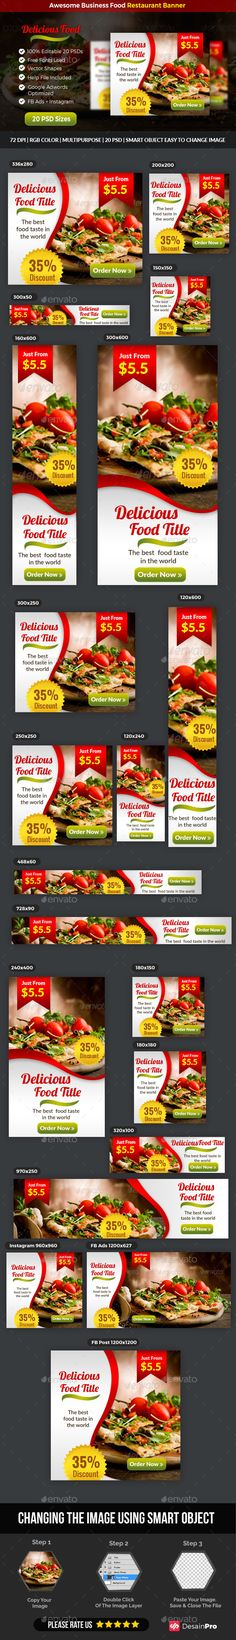 Business Food Restaurant Banner Facebook Ads and Instagram Templates PSD. Download here: https://graphicriver.net/item/business-food-restaurant-banner-facebook-ads-and-instagram/17606240?ref=ksioks